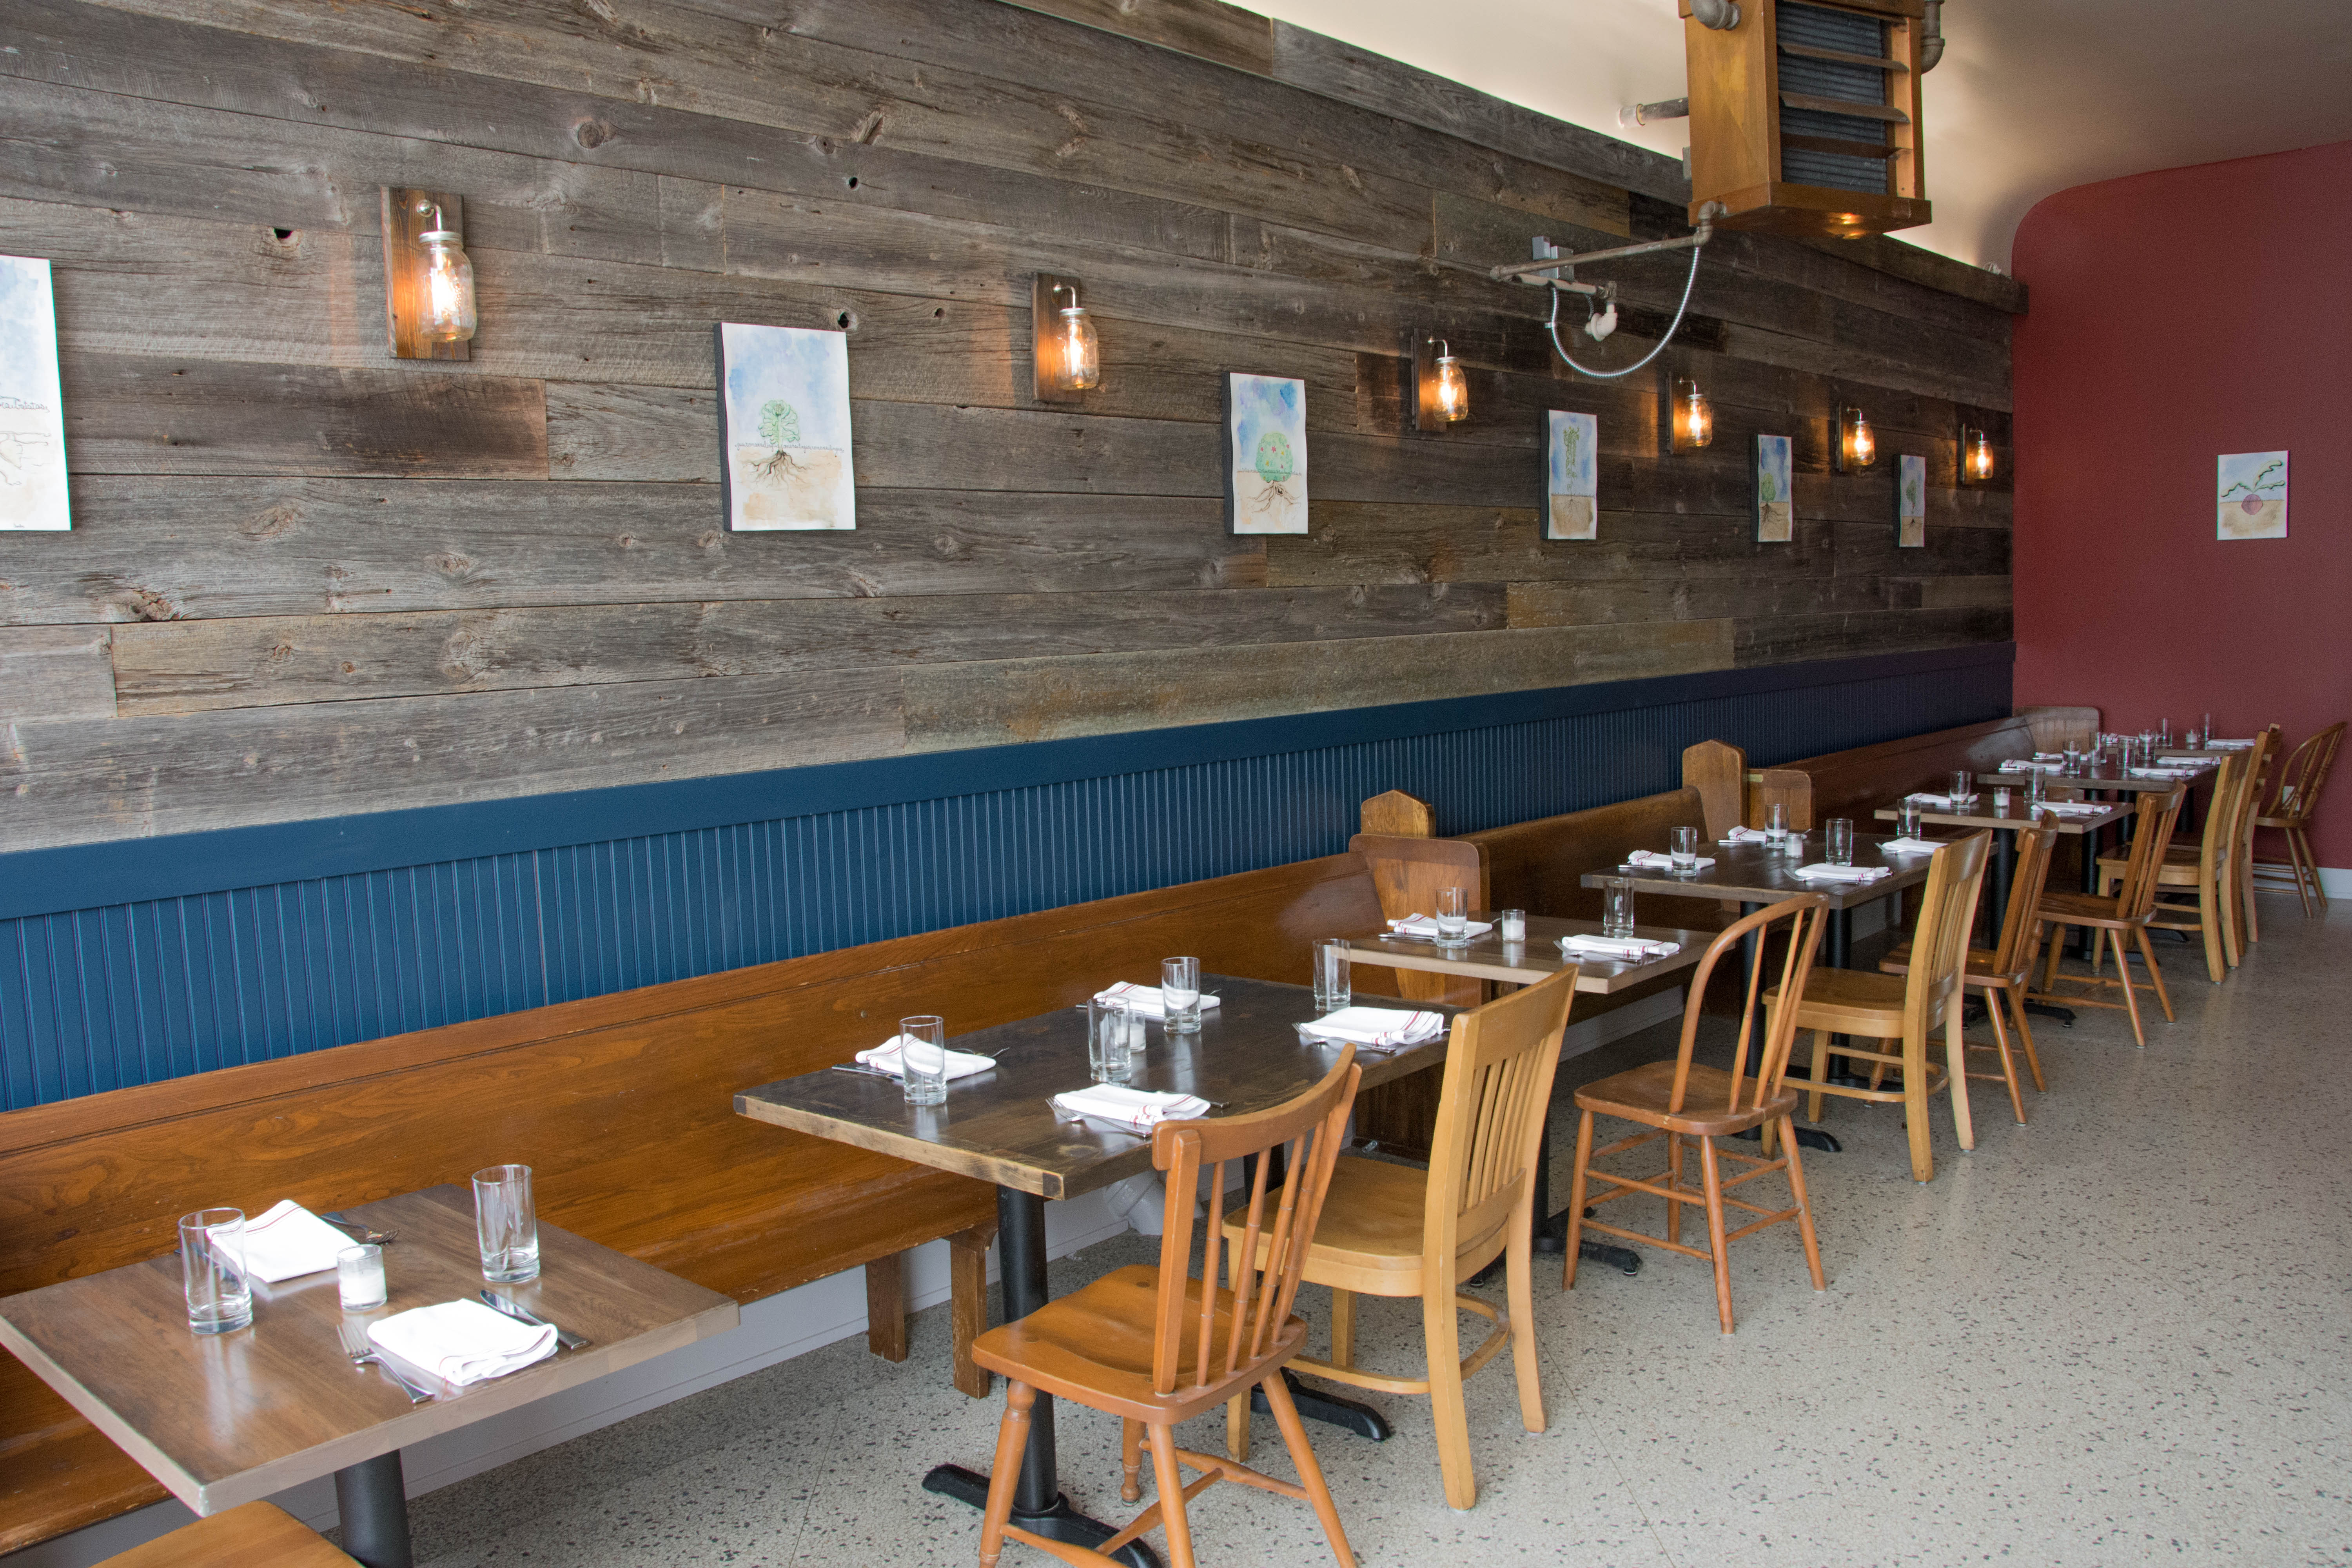 Reclaimed wood, mismatched chairs and a cozy aesthetic make up St. Paul's Heirloom